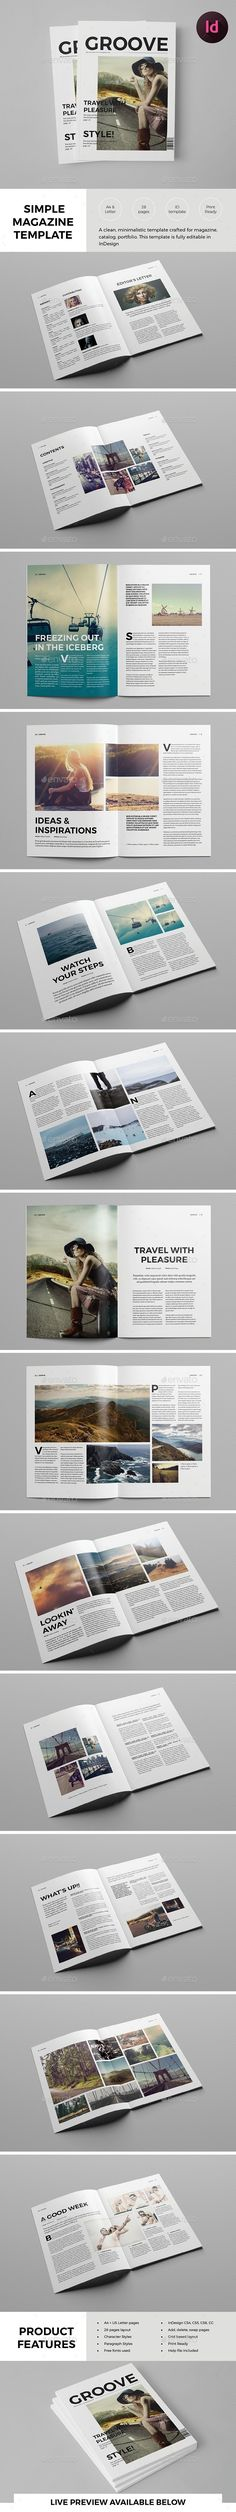 Clean Lifestyle Magazine Template  — InDesign Template #simple #magazine template • Download ➝ https://graphicriver.net/item/clean-lifestyle-magazine-template/18238552?ref=pxcr